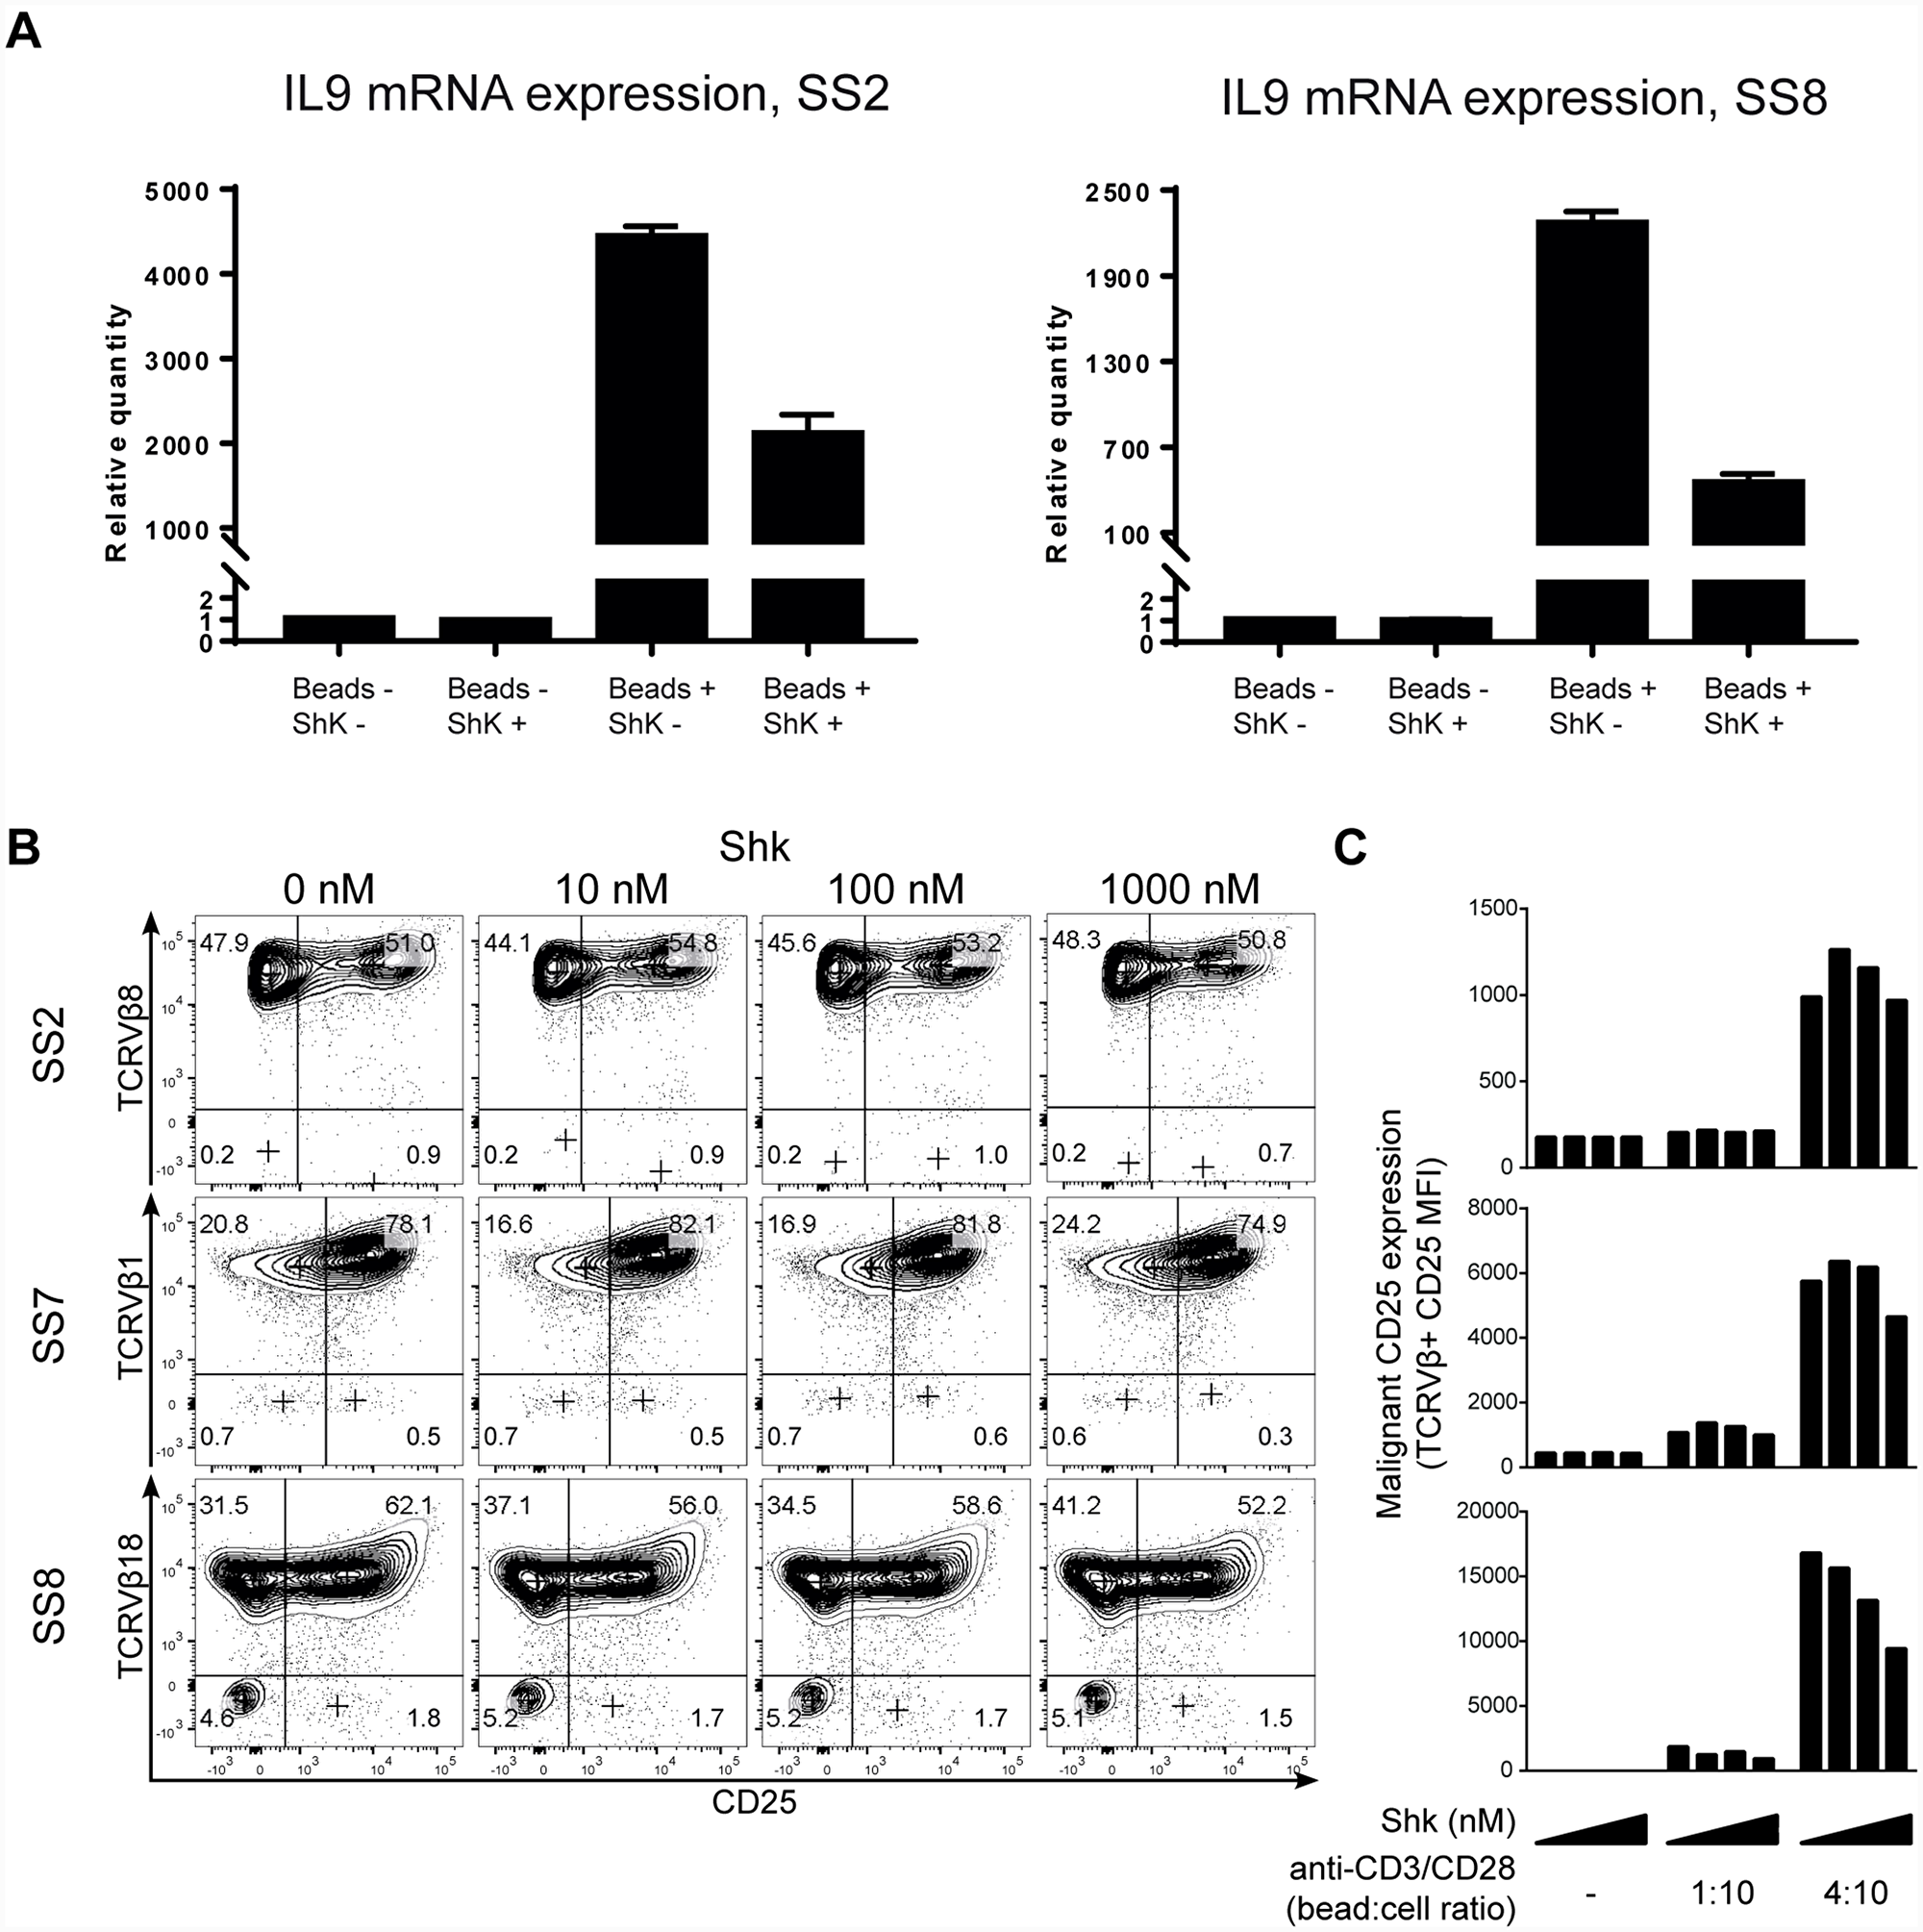 Kv1.3 blockade inhibits activation-induced cytokine and cytokine receptor expression in malignant T cells from SS patients.